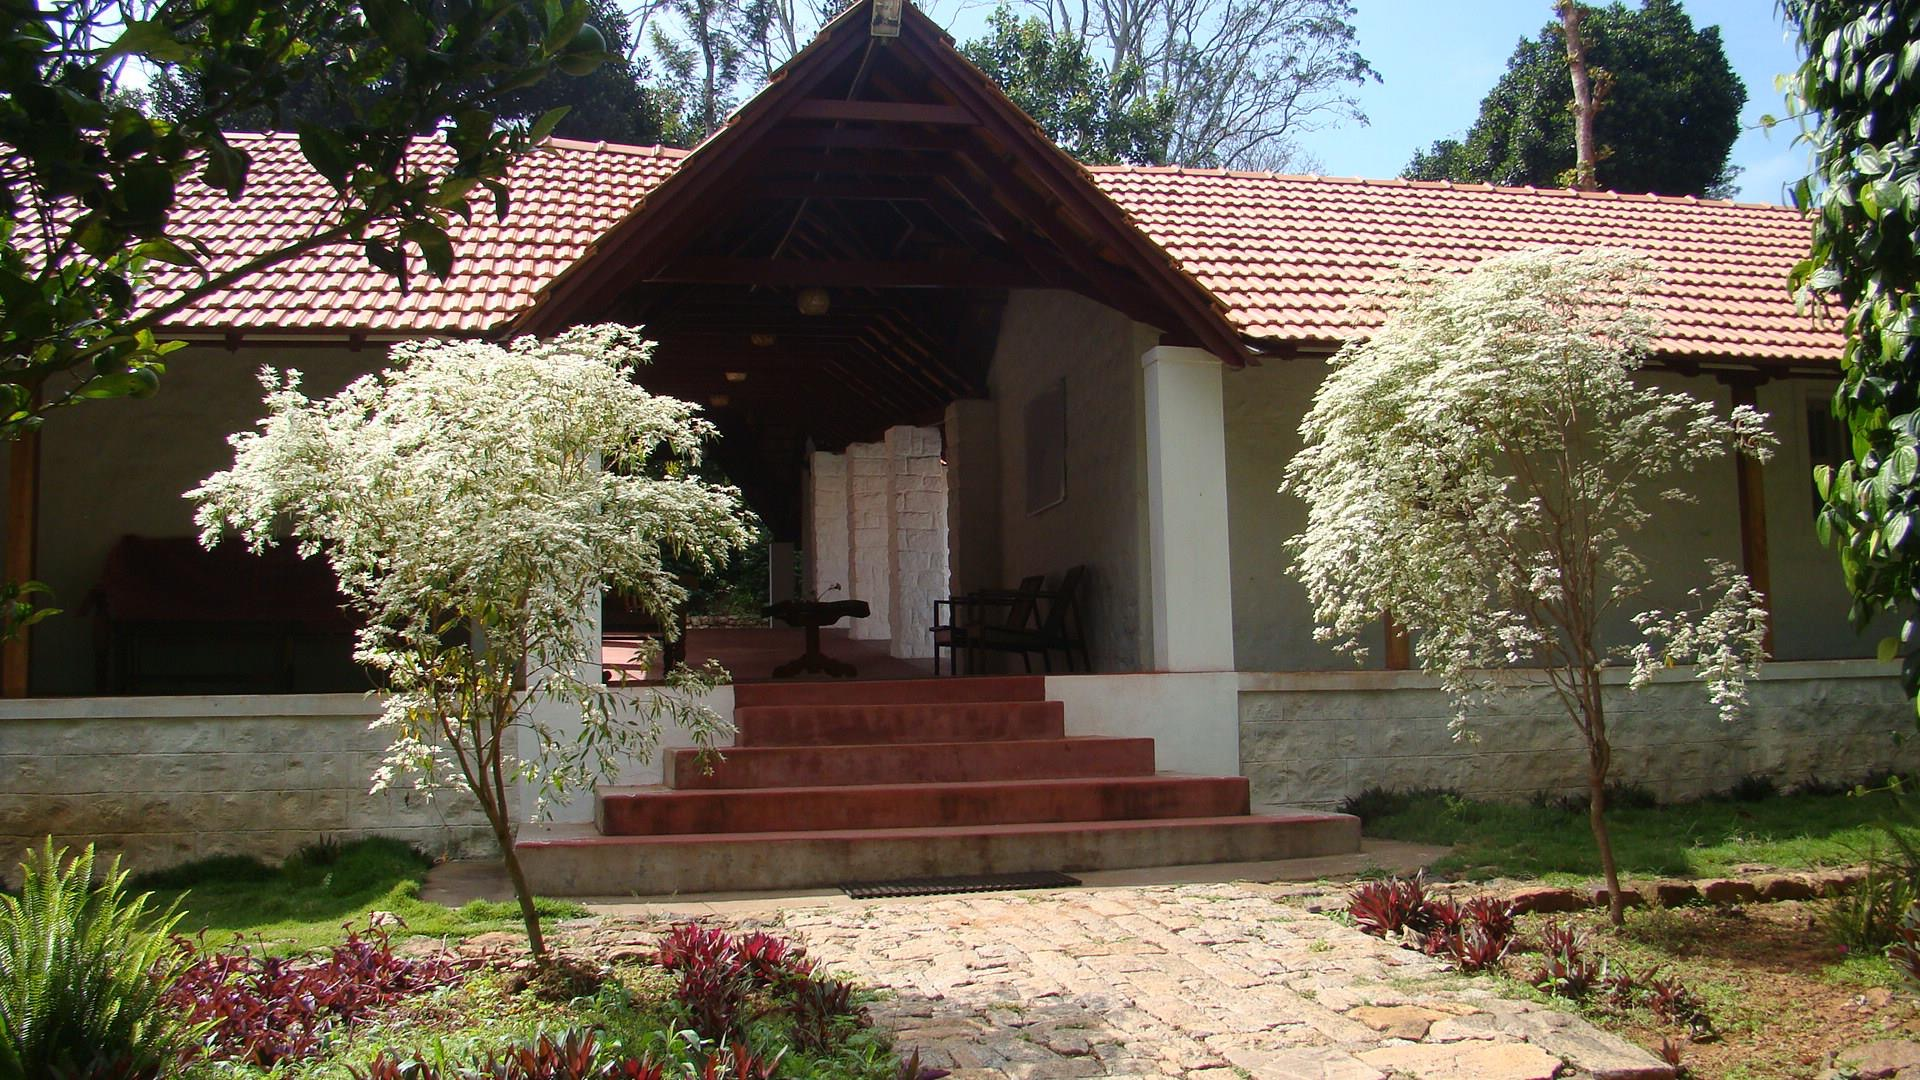 Hotels near railway station in kodaikanal with photos and prices for Kodaikanal cottage with swimming pool